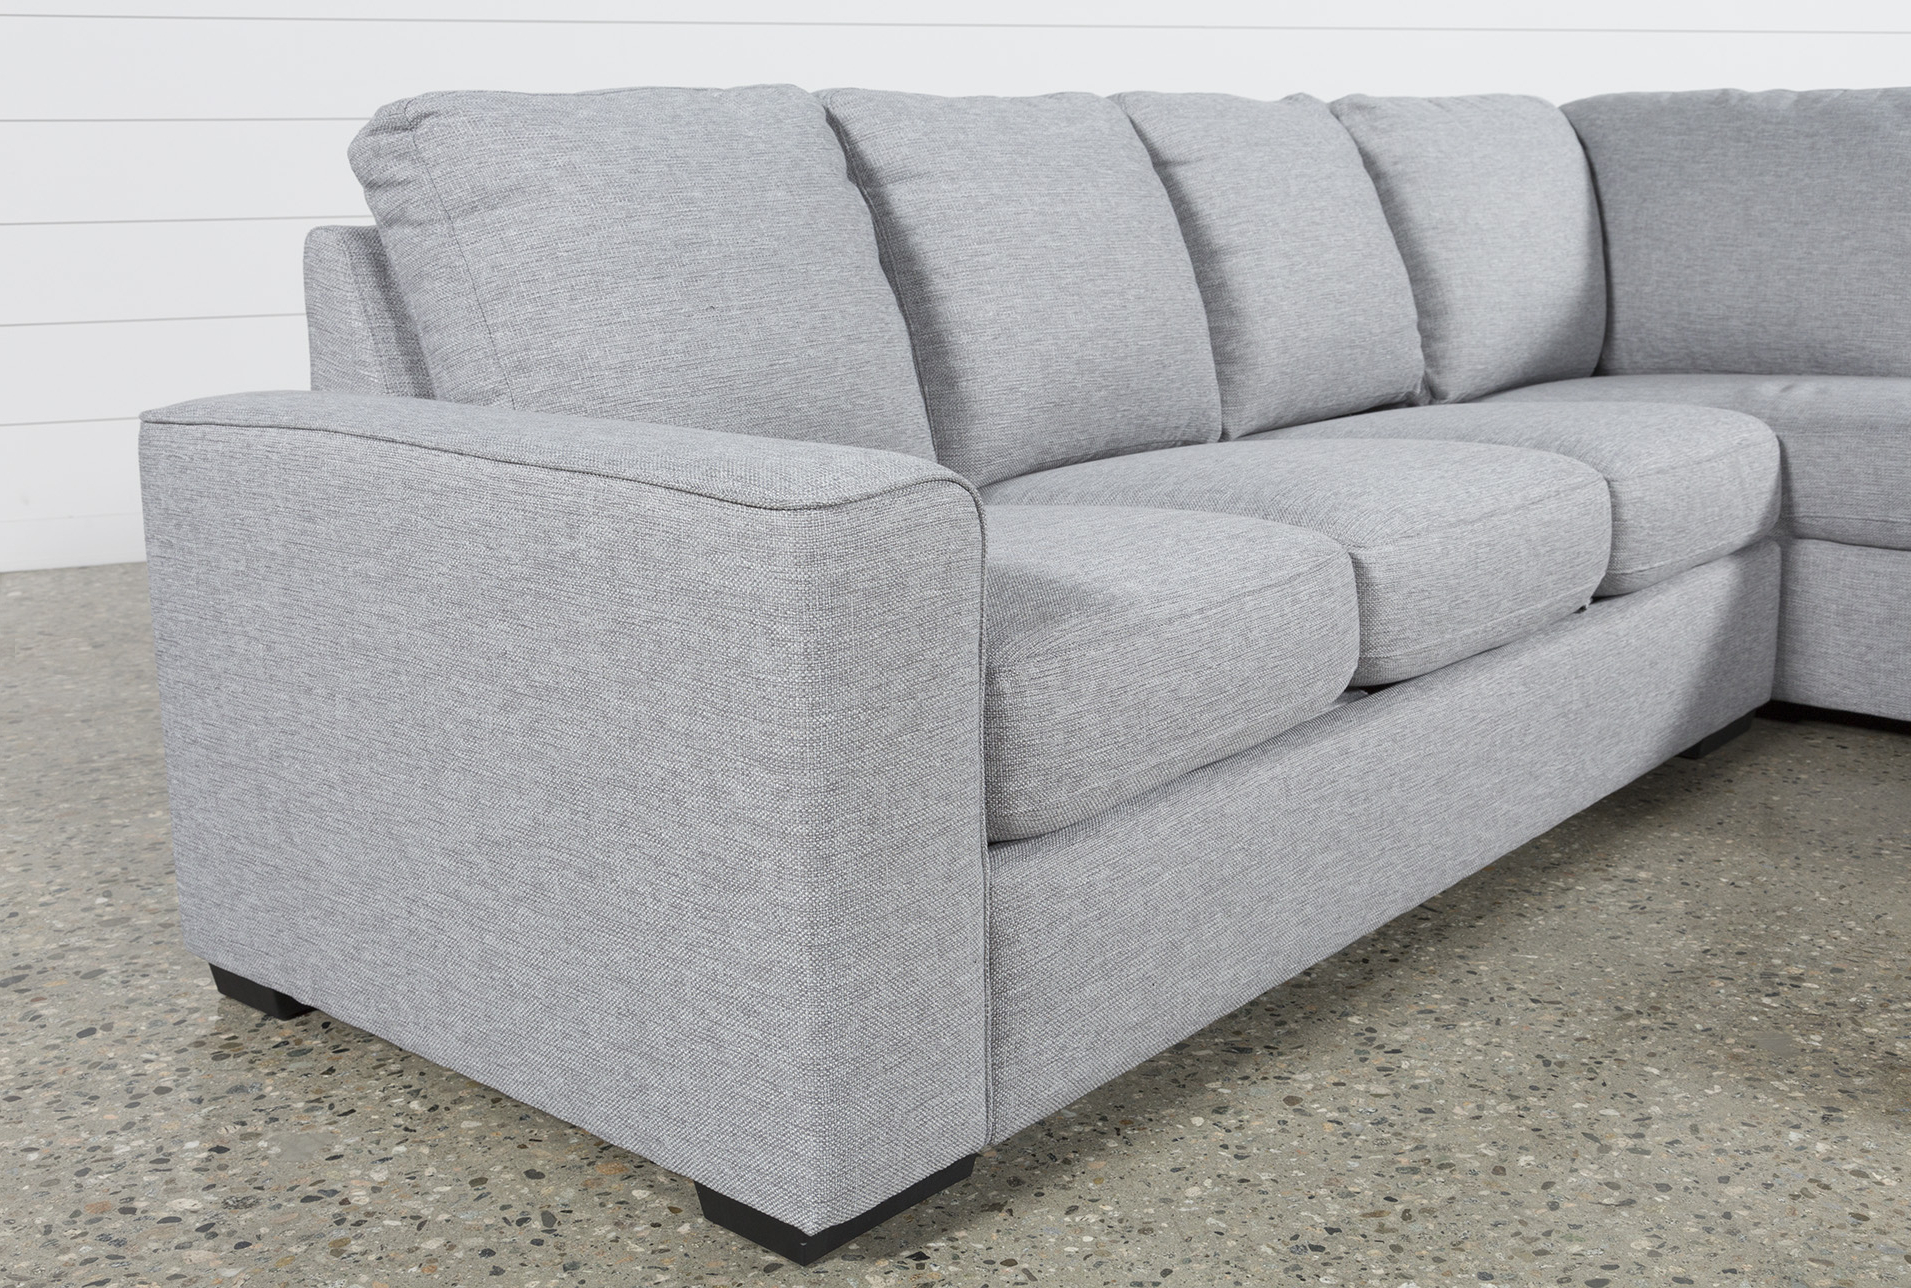 Arrowmask 2 Piece Sectionals With Raf Chaise Throughout Most Popular Lucy Grey 2 Piece Sectional W/laf Chaise (View 15 of 20)